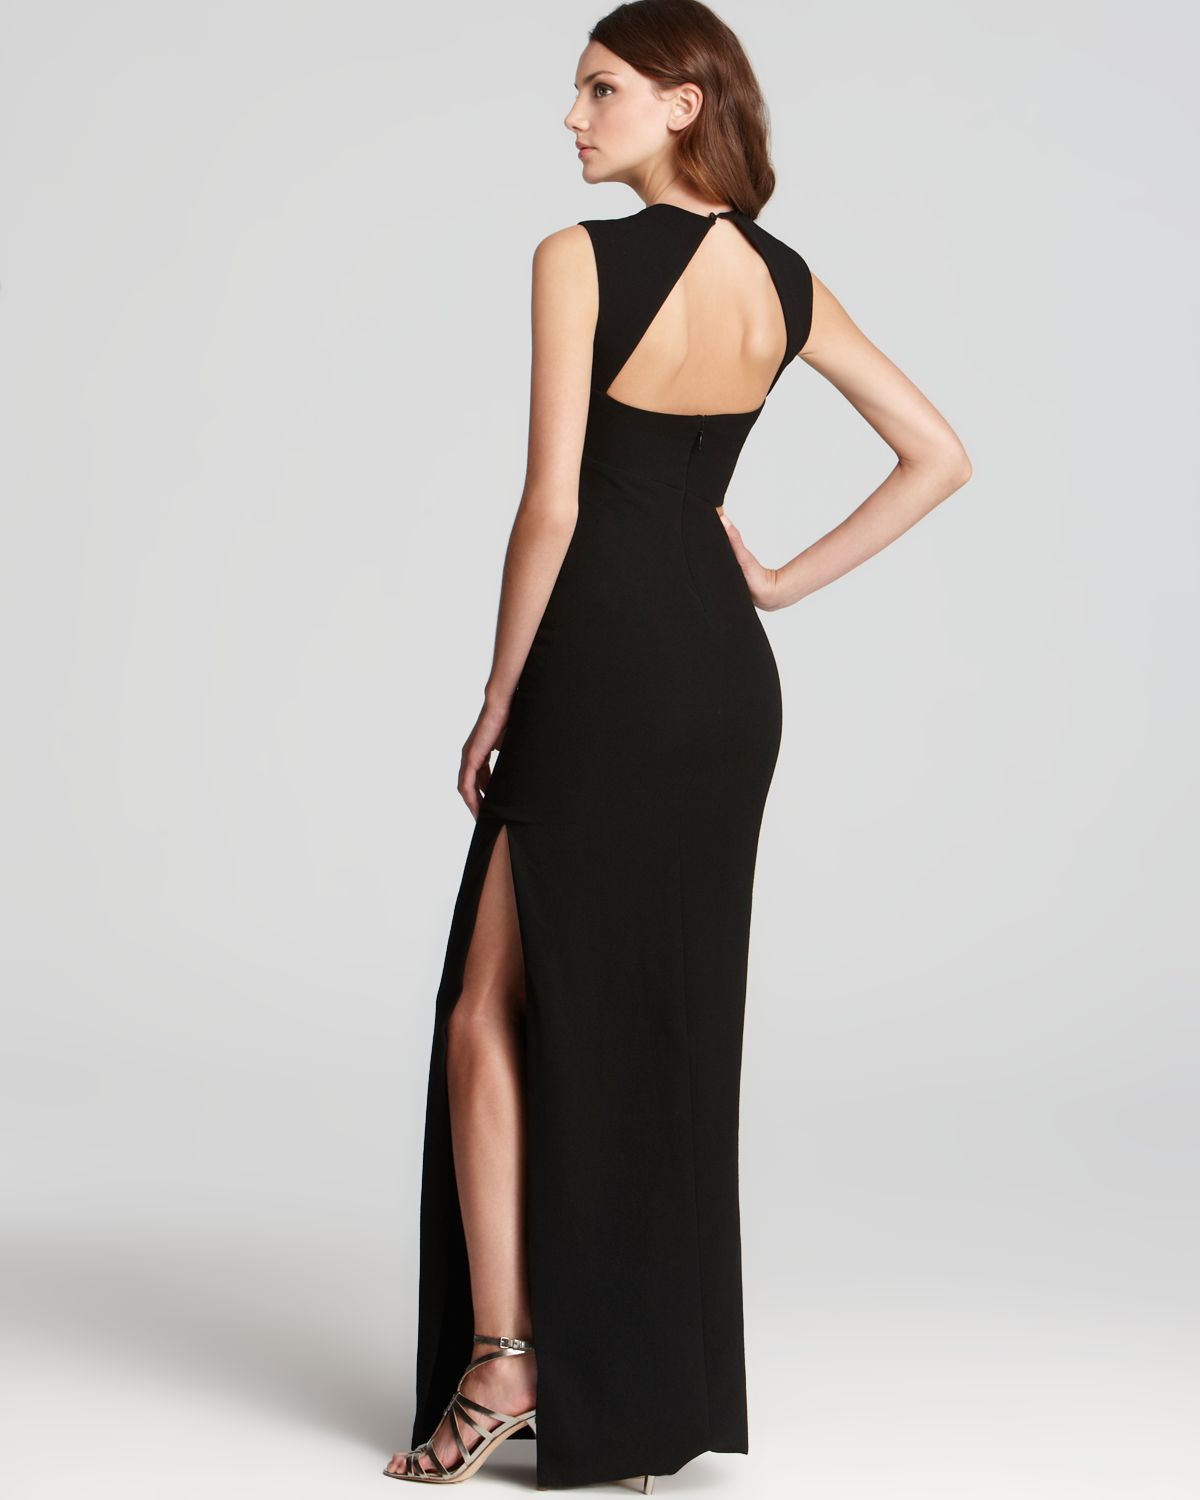 Bcbgmaxazria Gown Sleeveless Cut-out in Black - Lyst